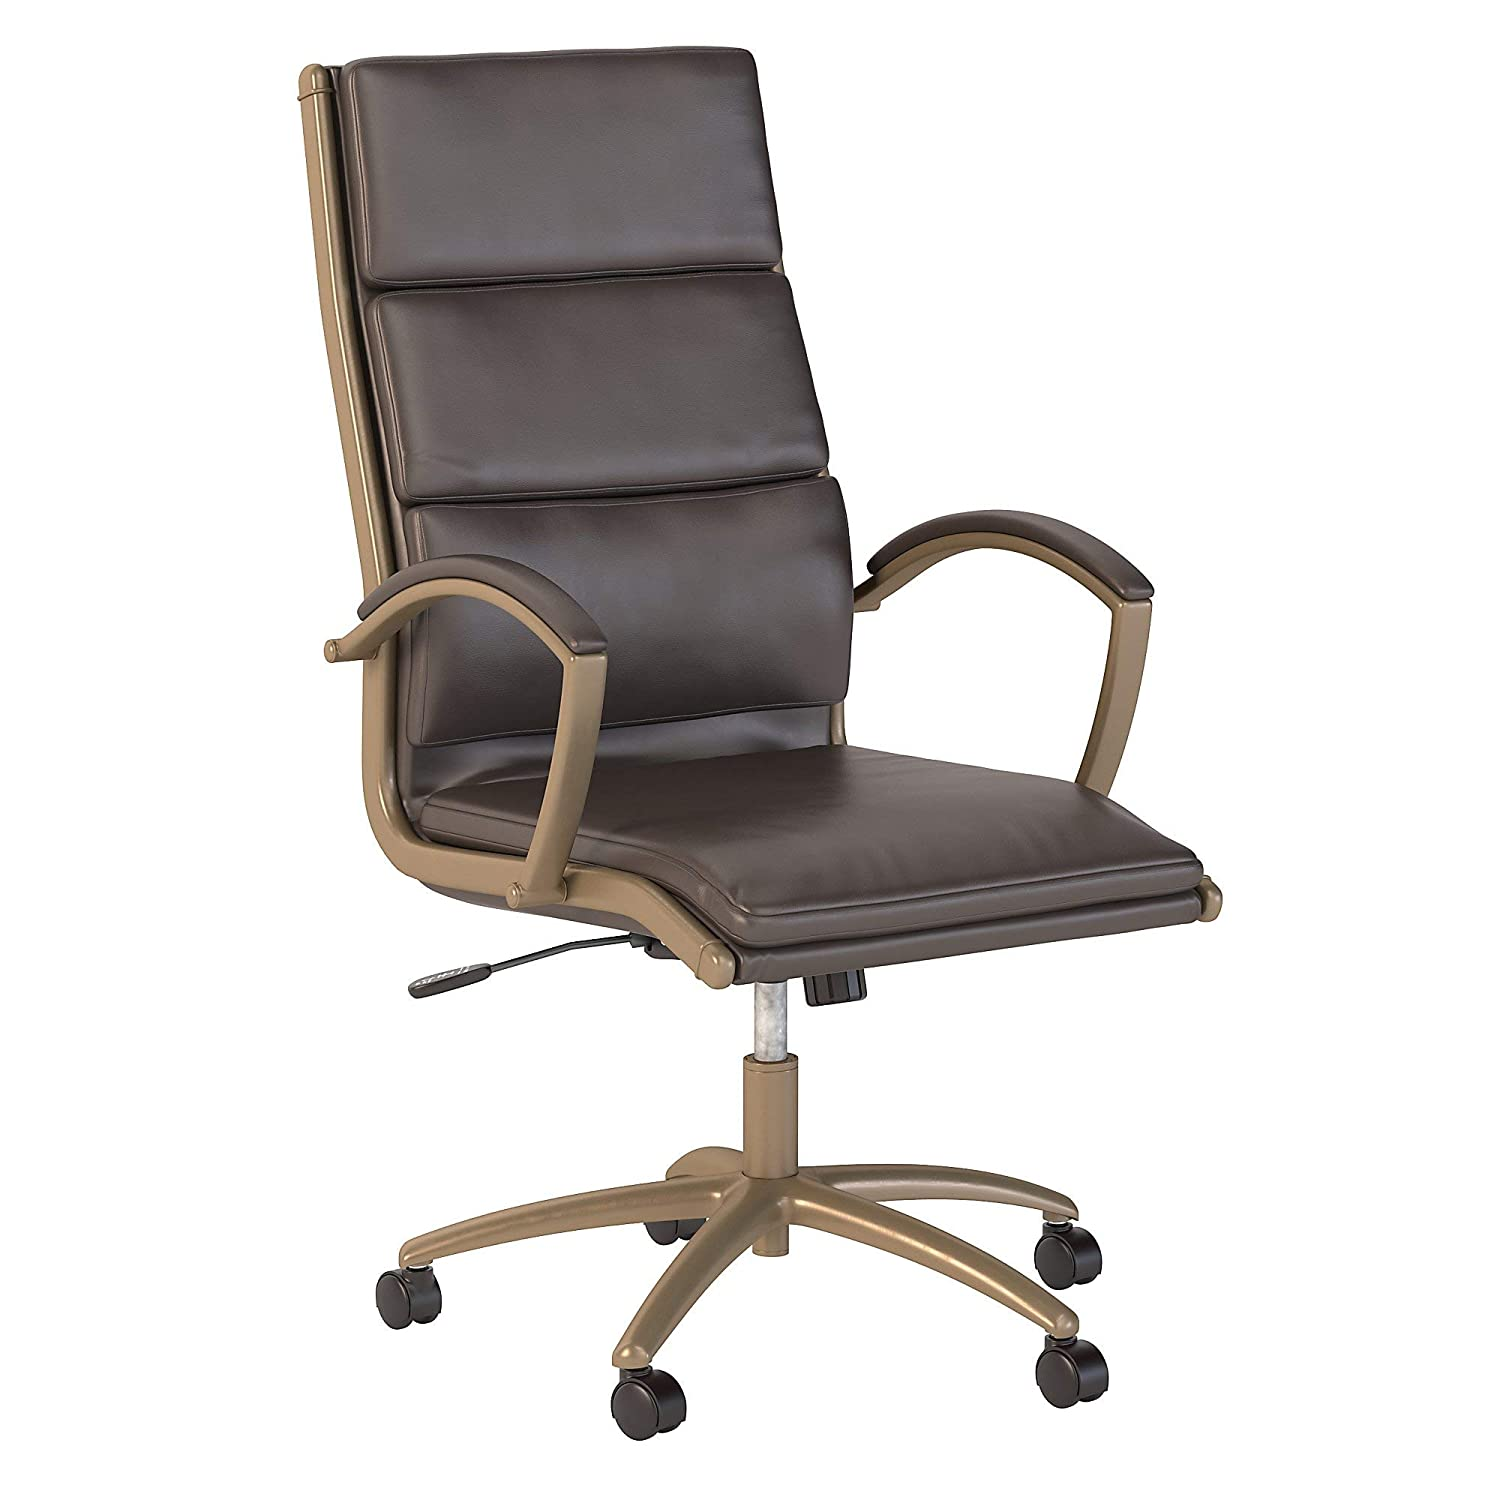 Bush Business Furniture Modelo High Back Leather Executive Office Chair in Brown with Brushed Brass